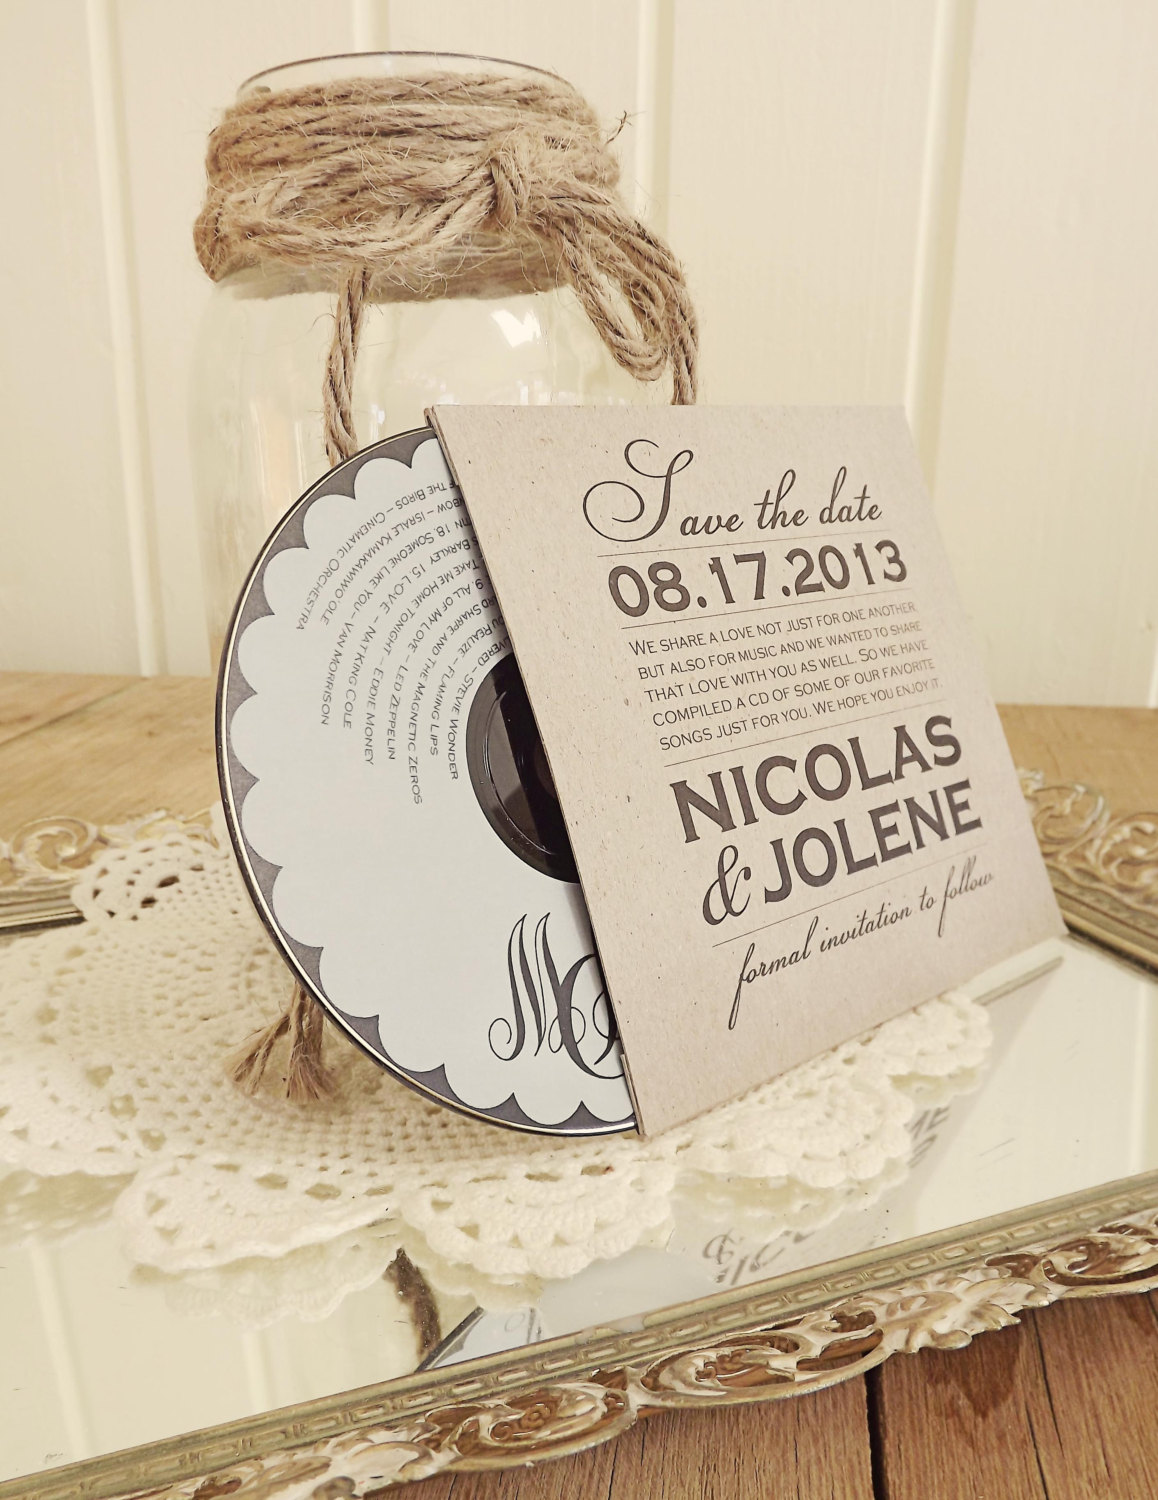 wedding-favor-1.1-07232014nz